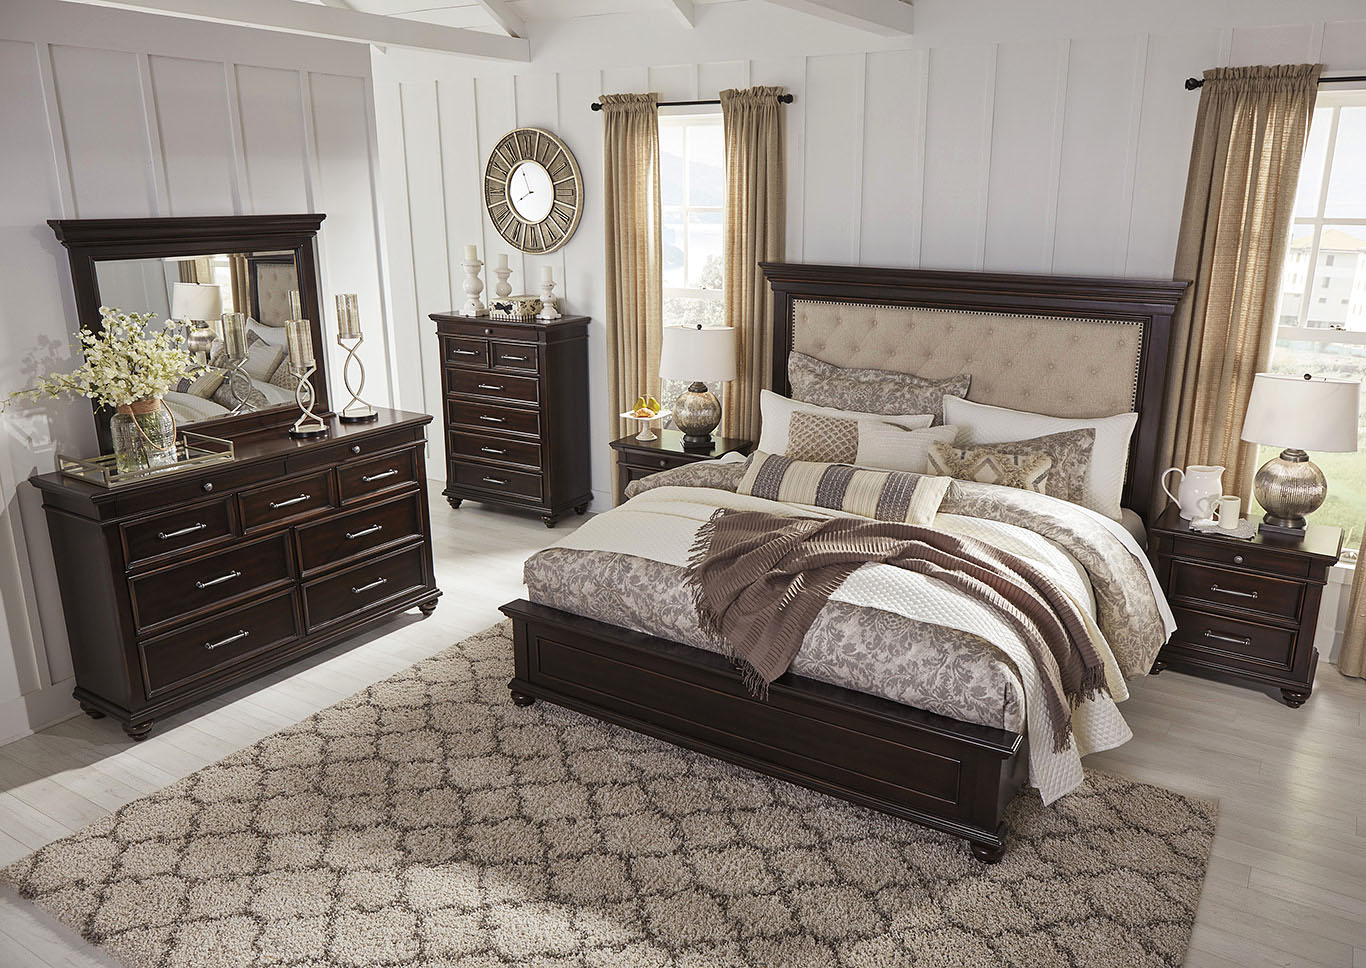 Brynhurst Brown Queen Upholstered Panel Bed,Signature Design By Ashley